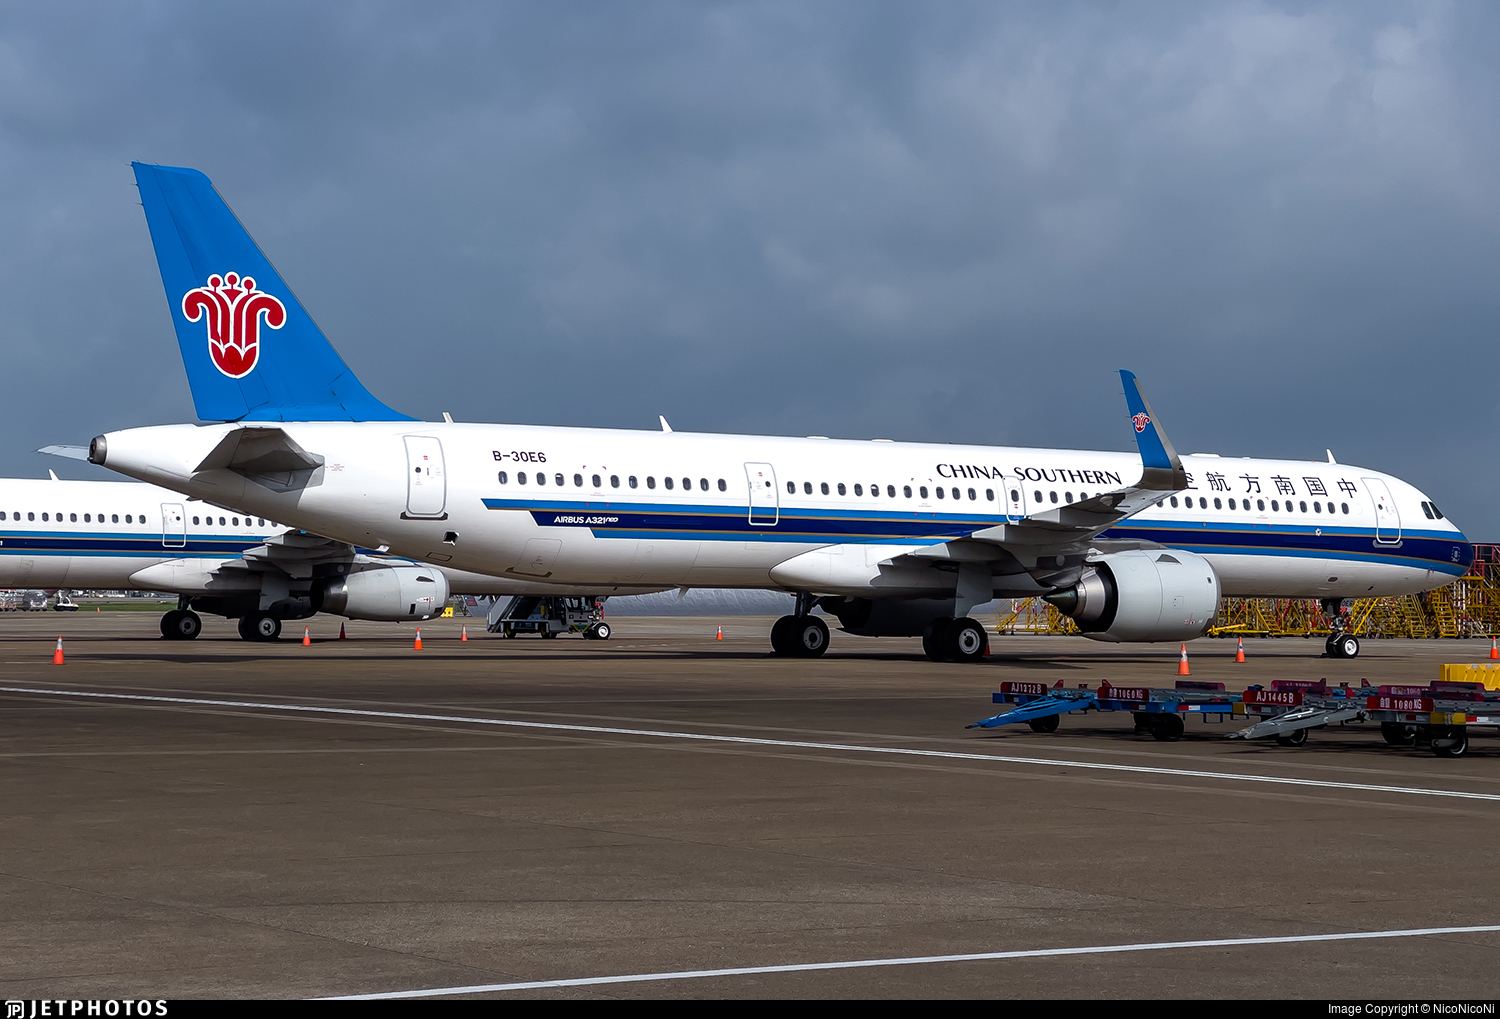 B-30E6 - Airbus A321-253NX - China Southern Airlines